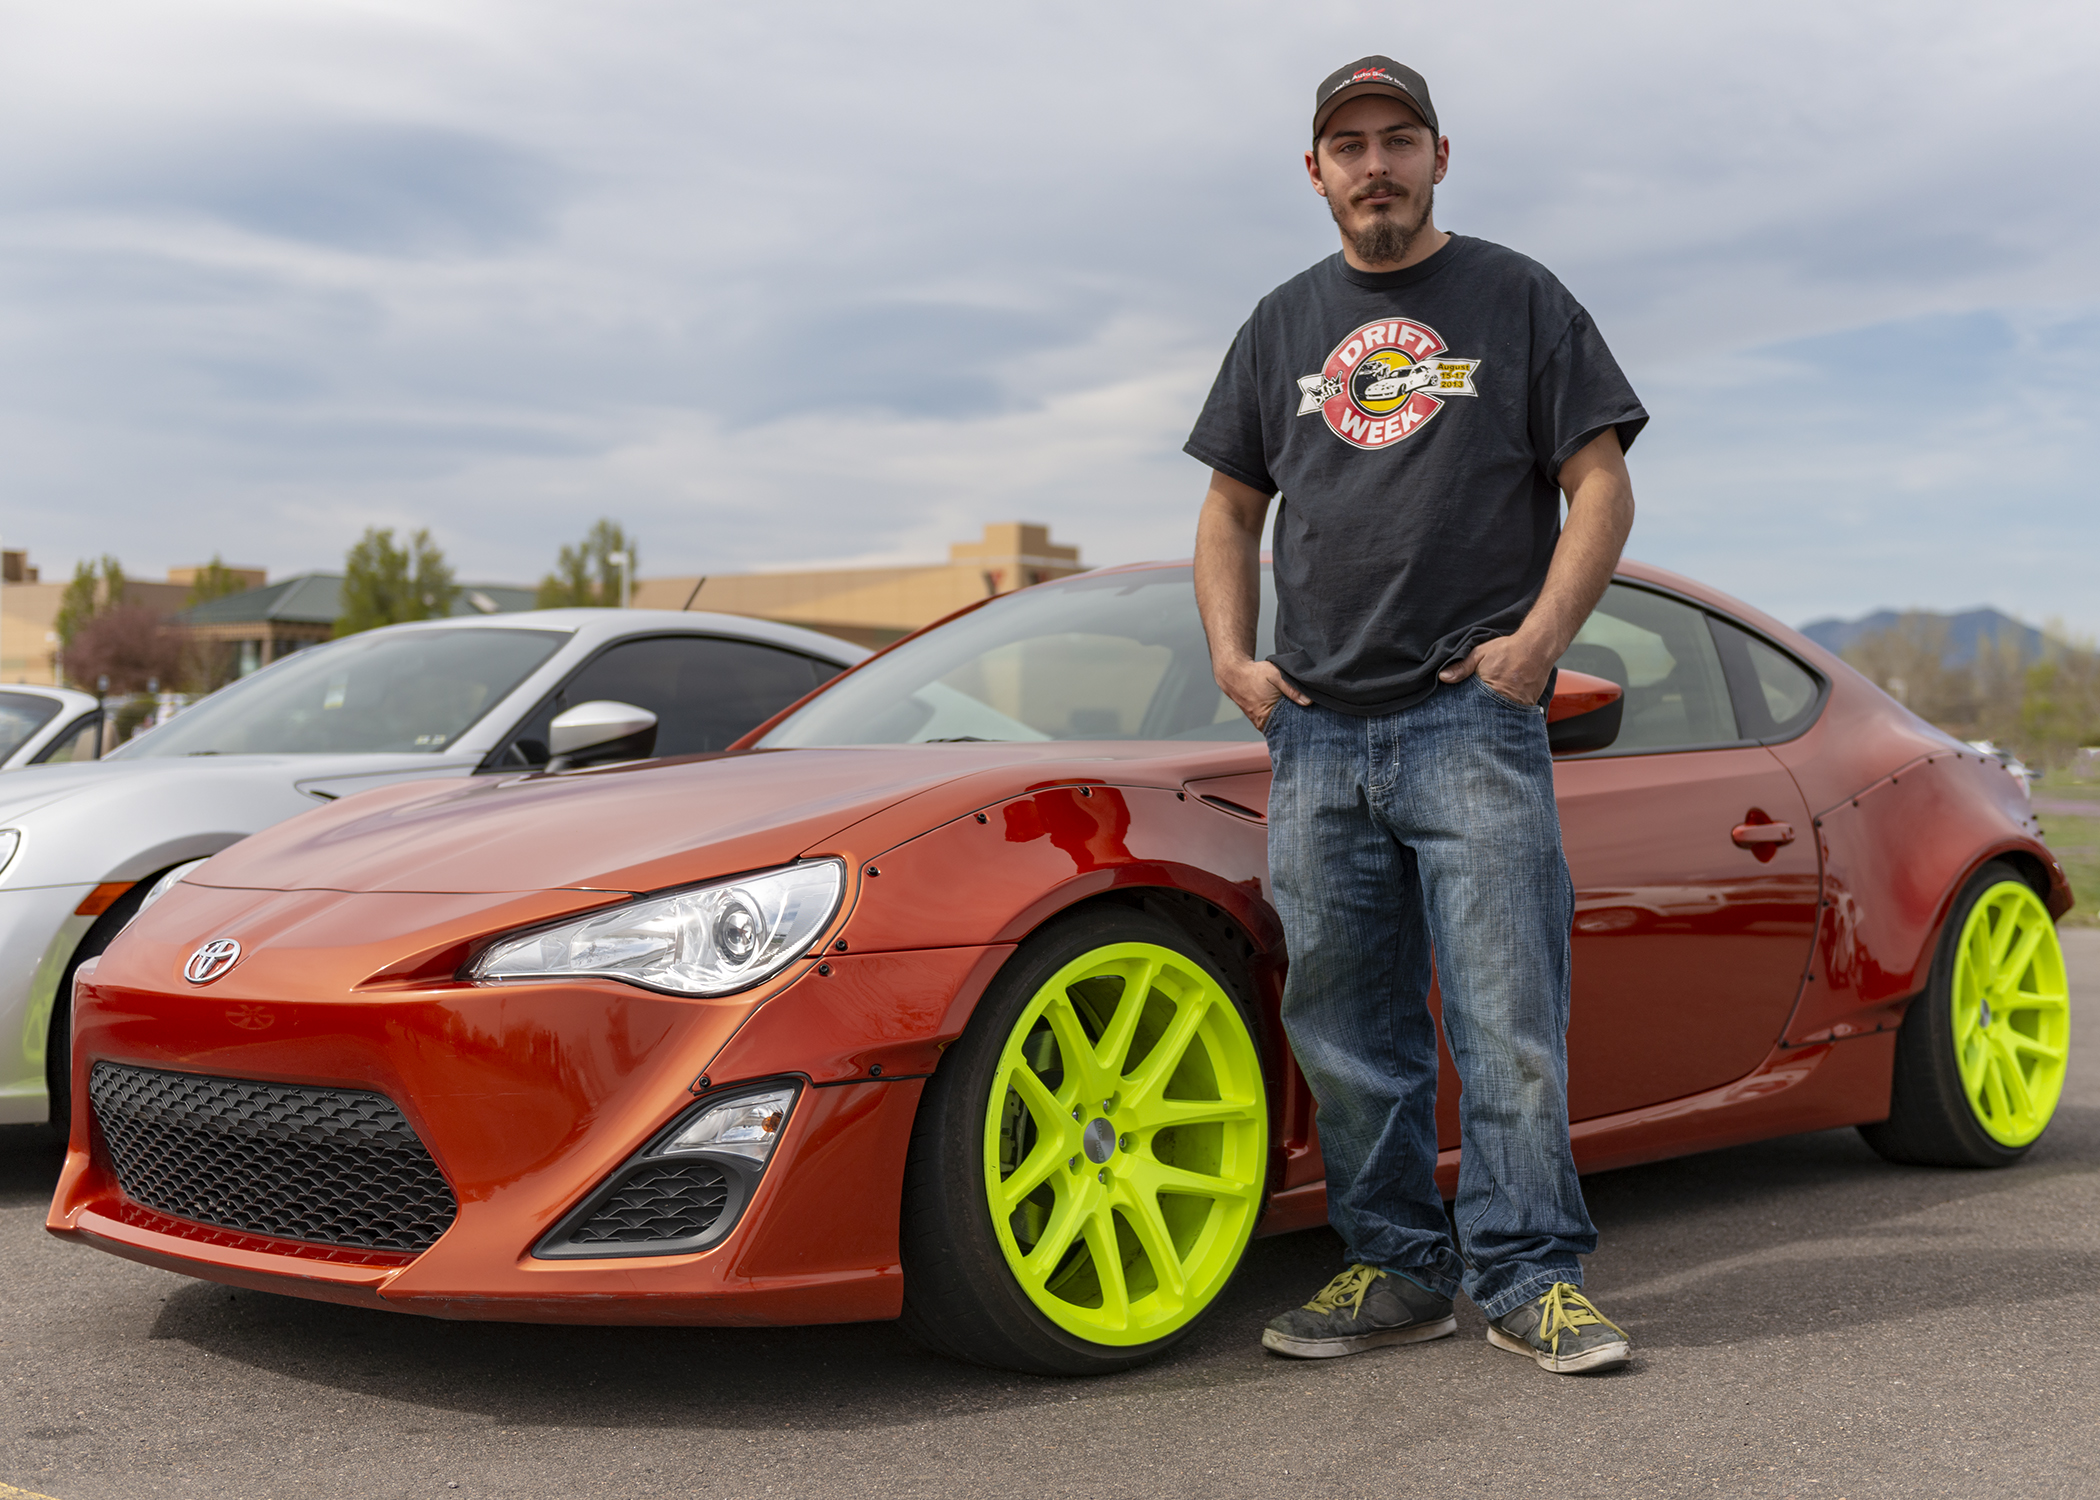 Tuner guy and his custom wide-body Toyota 86.